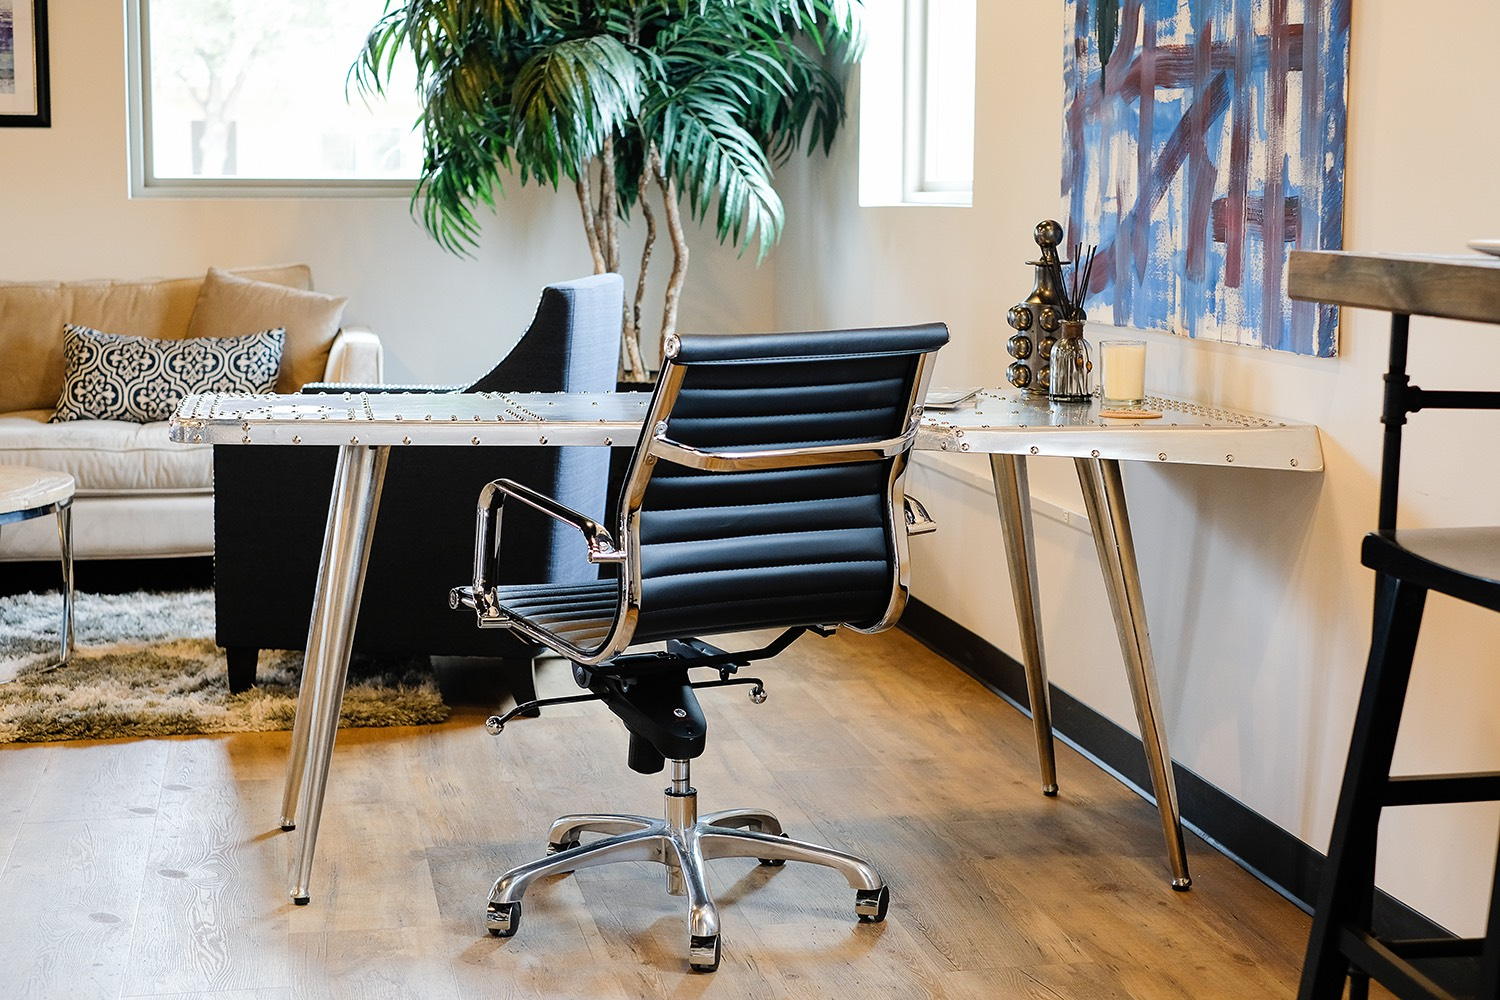 Collective Membership$225 / month - The ultimate in flexibility. Enjoy unlimited access to our shared tables, sitting & standing desks, private phone booths and lounges plus six hours per month of conference room reservations*. Membership also includes business mailing address.Plus one time $100 initiation fee